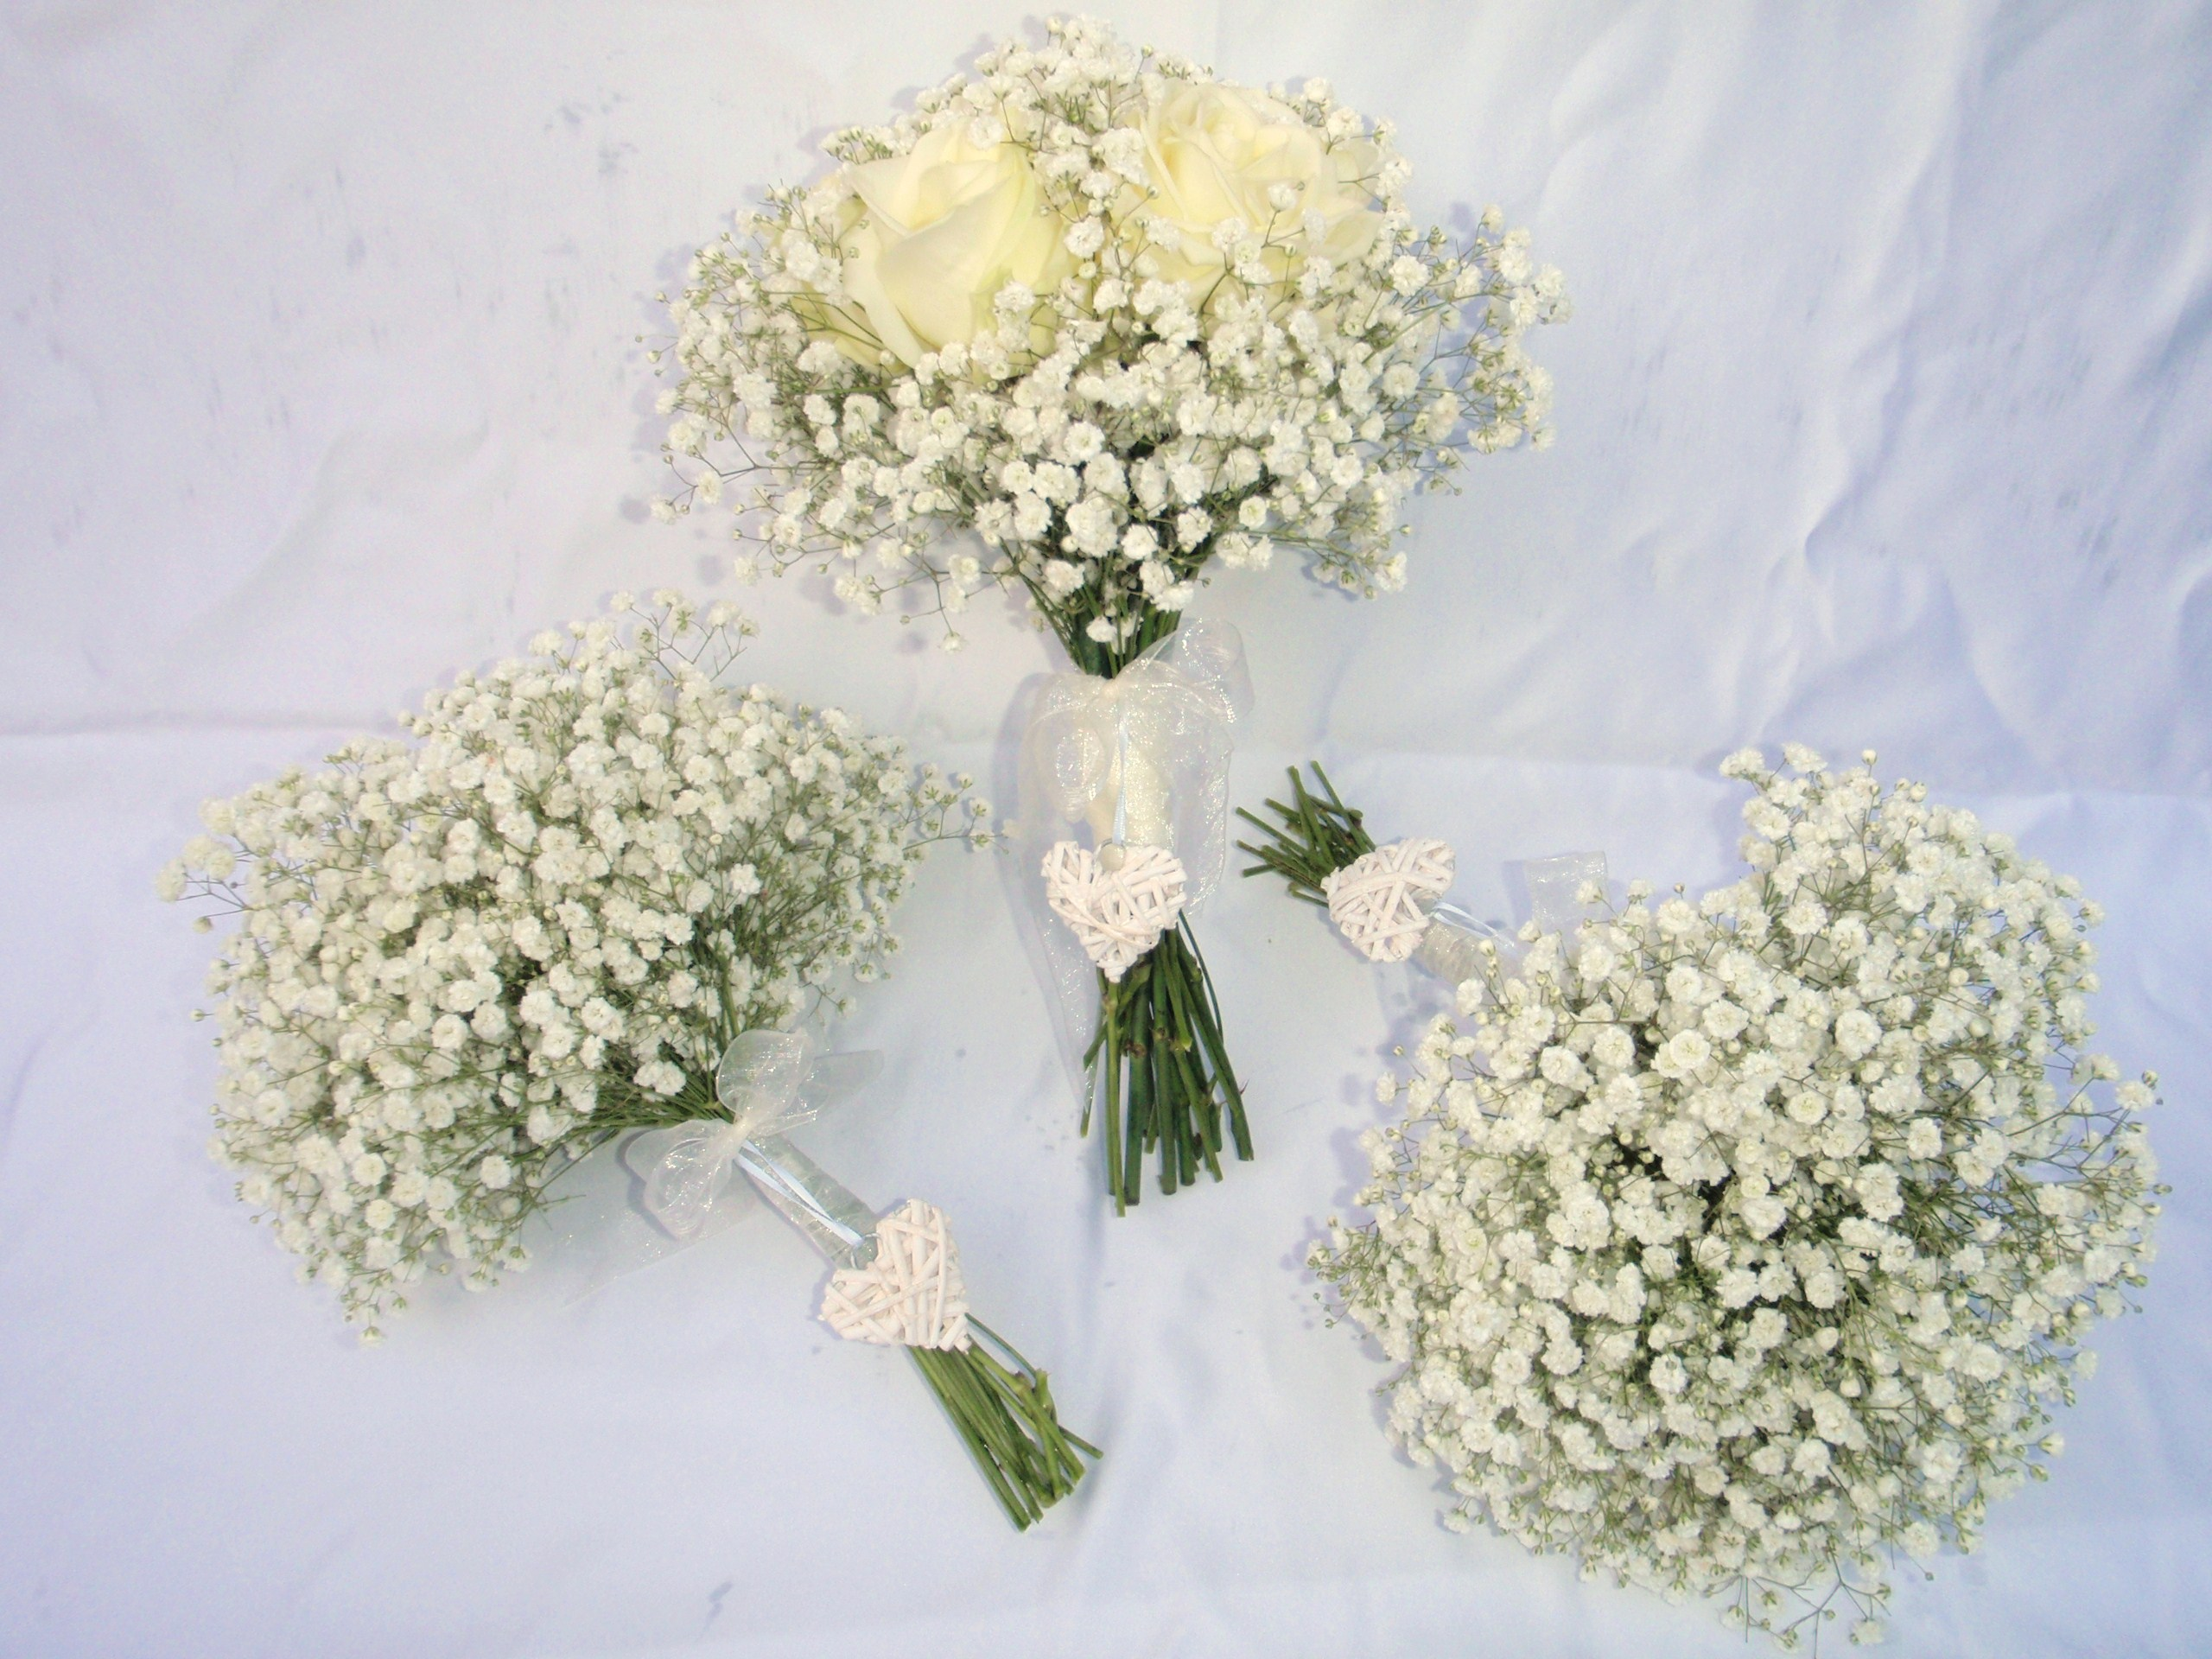 Gypsophila and Rose Bouquets with Heart